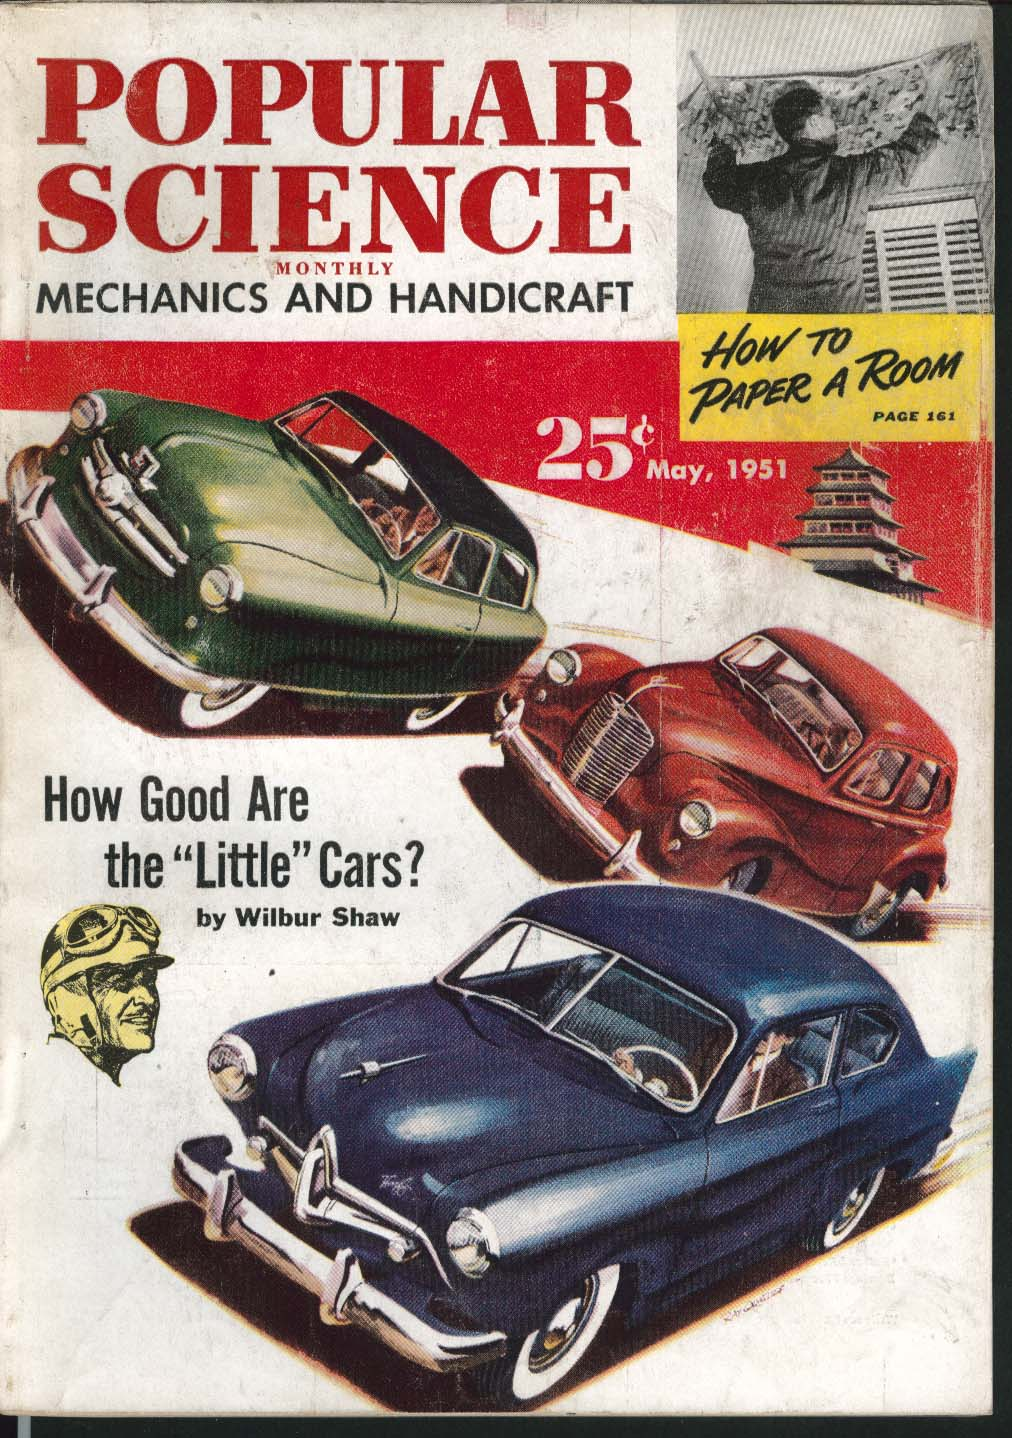 Image for POPULAR SCIENCE Wilbur Shaw Little Cars Dream Railroad Tennis Rackets ++ 5 1951